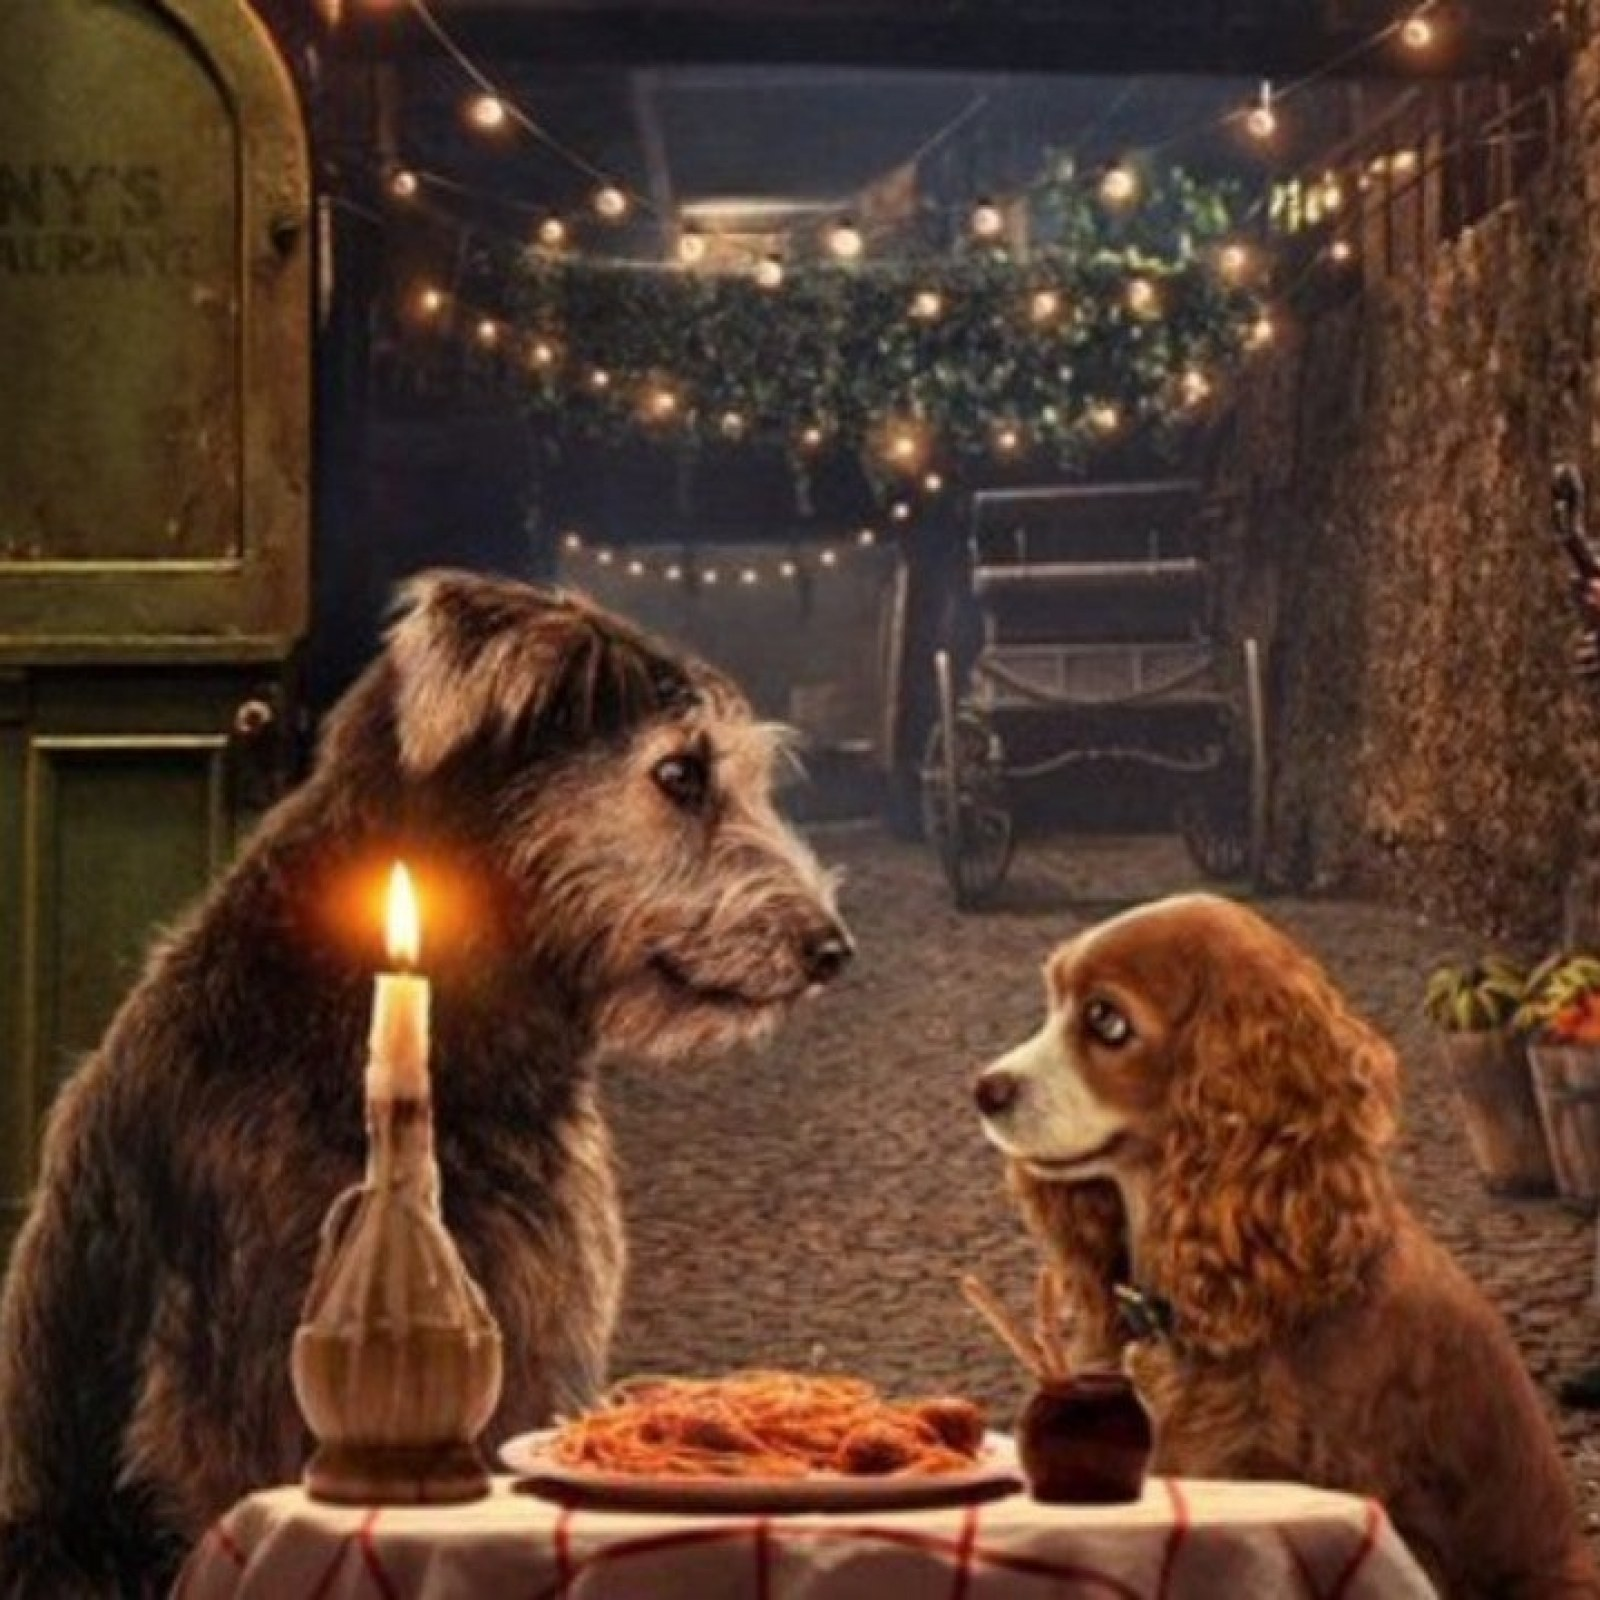 Lady And The Tramp 2019 Everything You Need To Know About The Disney Live Action Remake